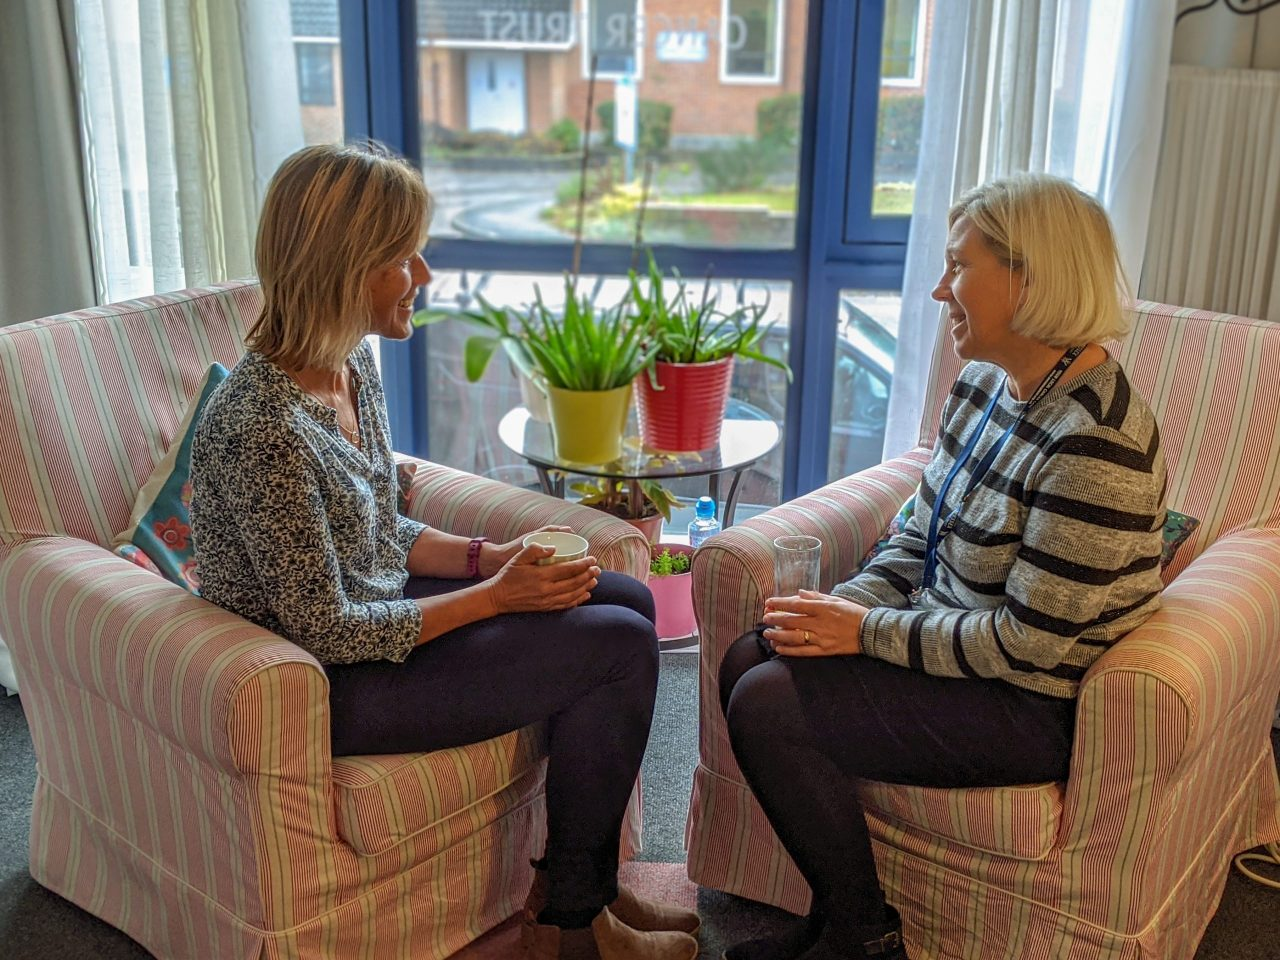 Wessex Cancer Trust welcomes back clients for face-to-face support